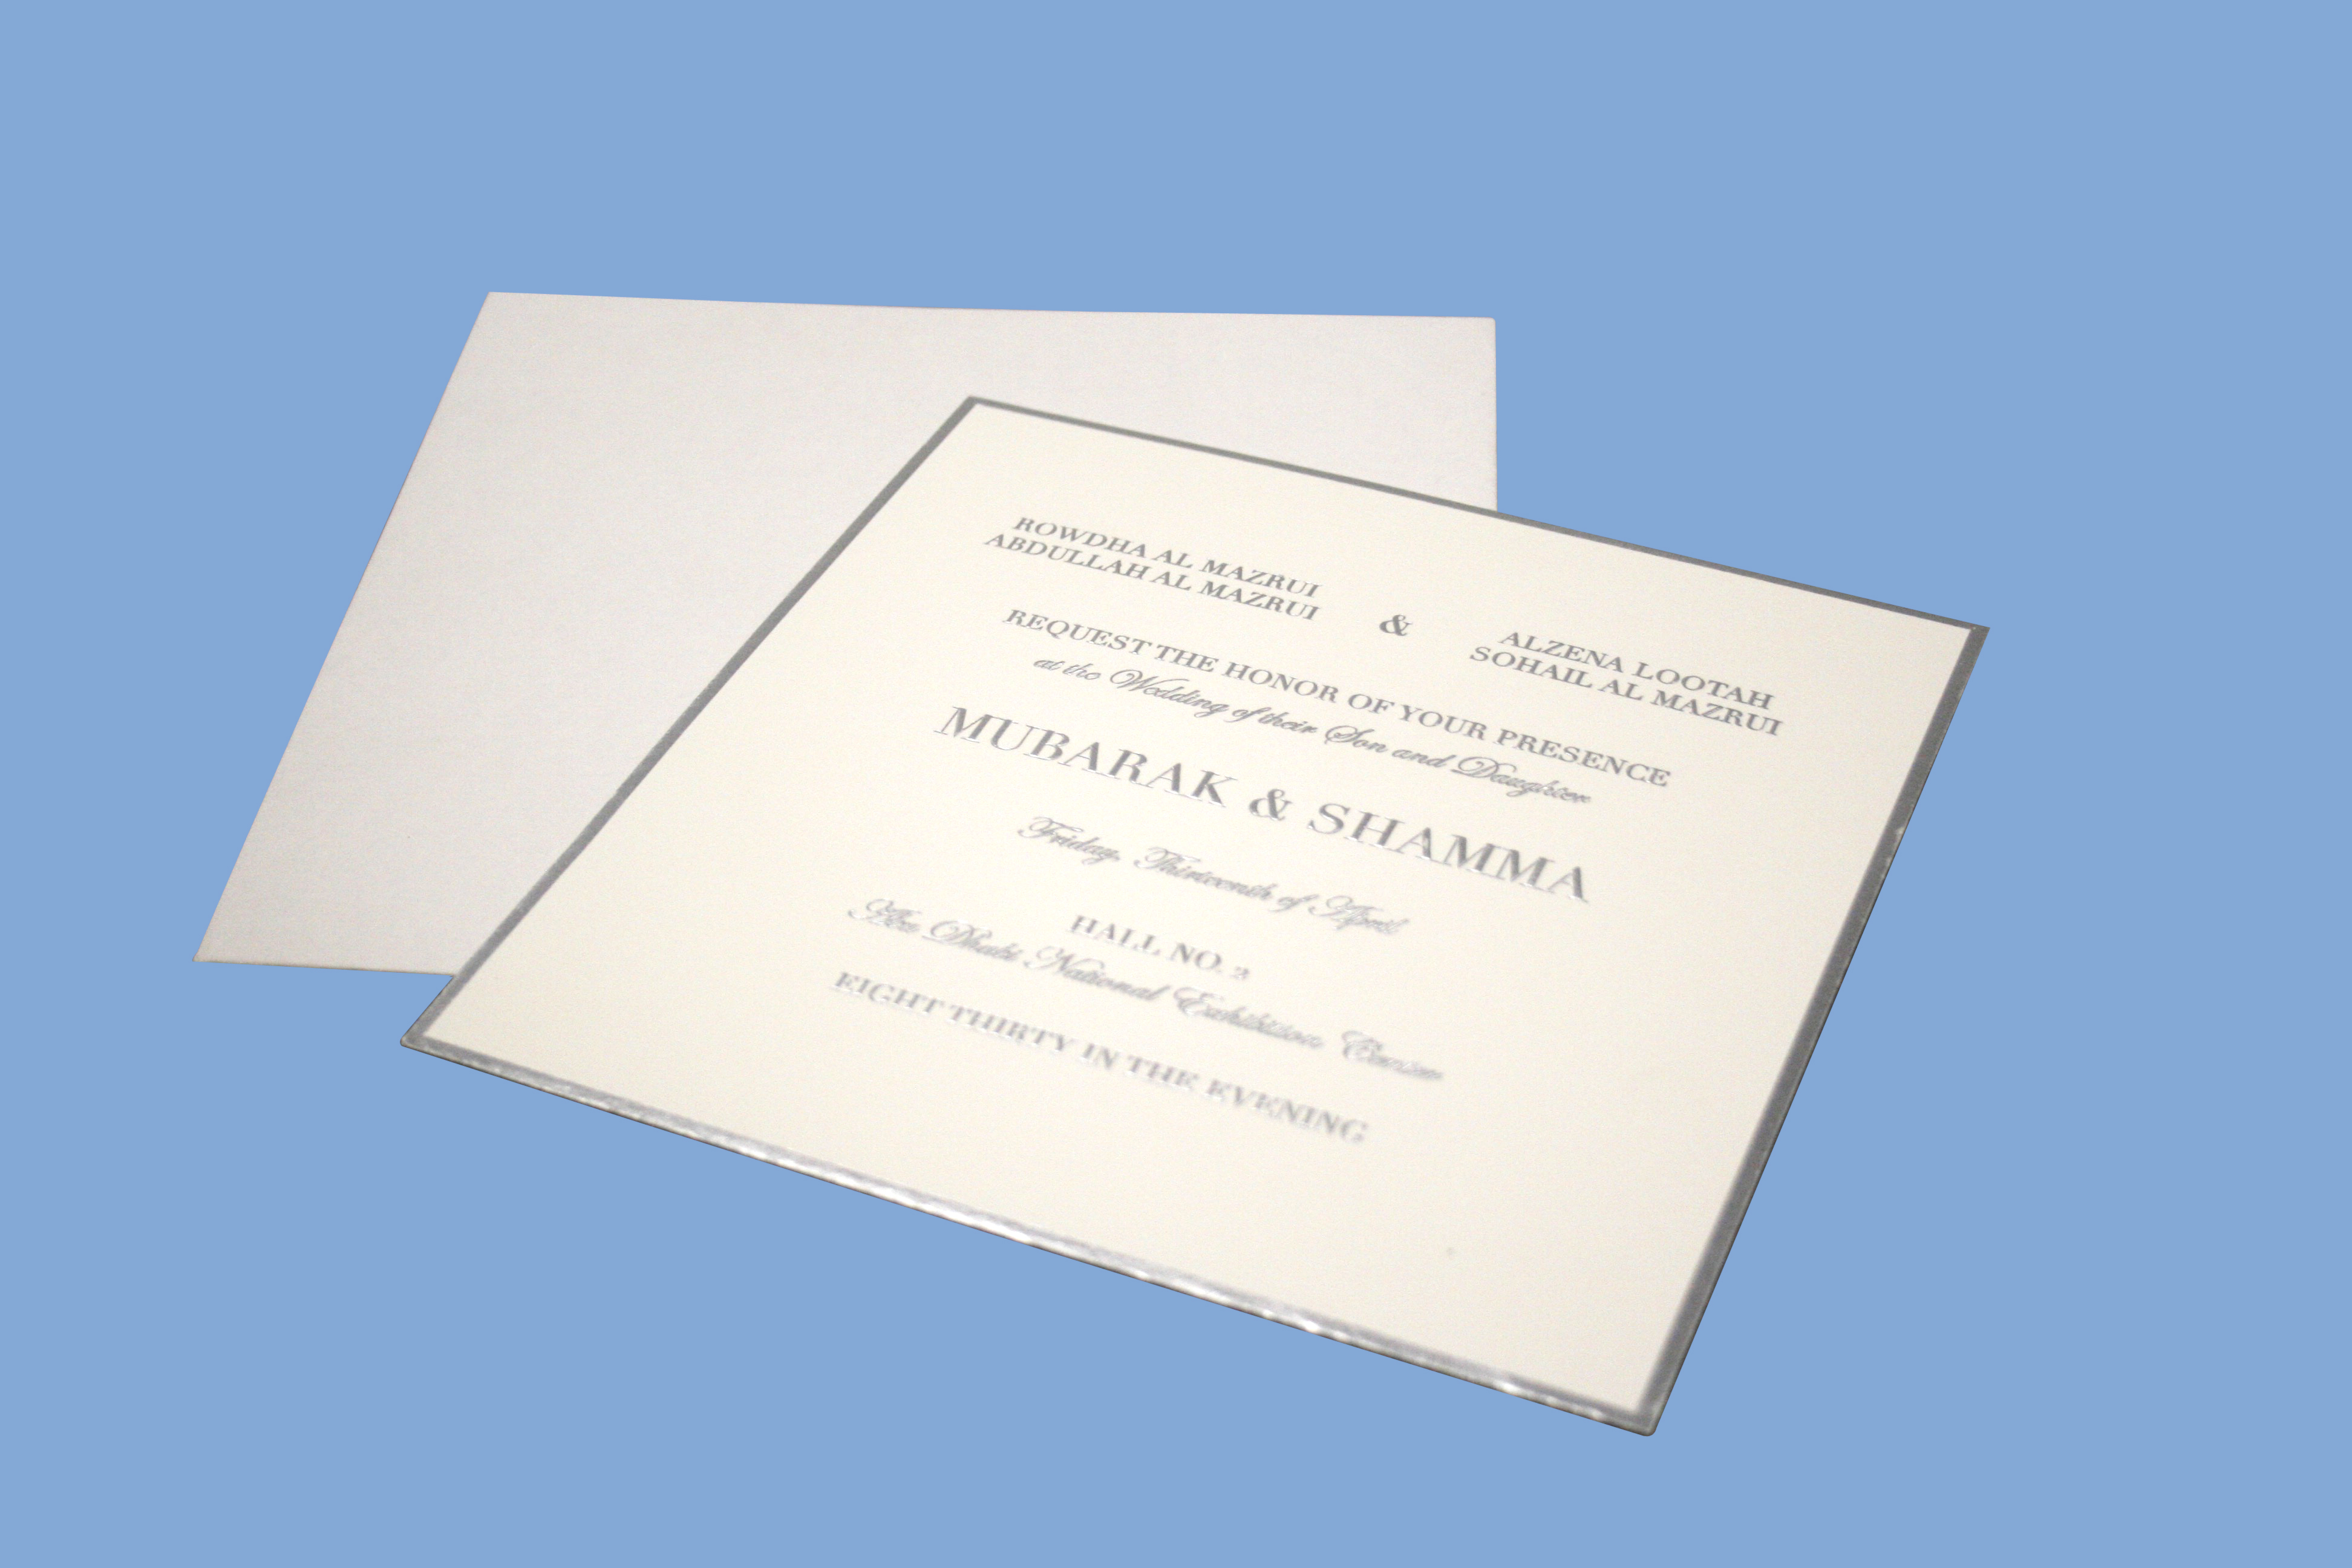 Square Shape Invitation With Silver Foiling